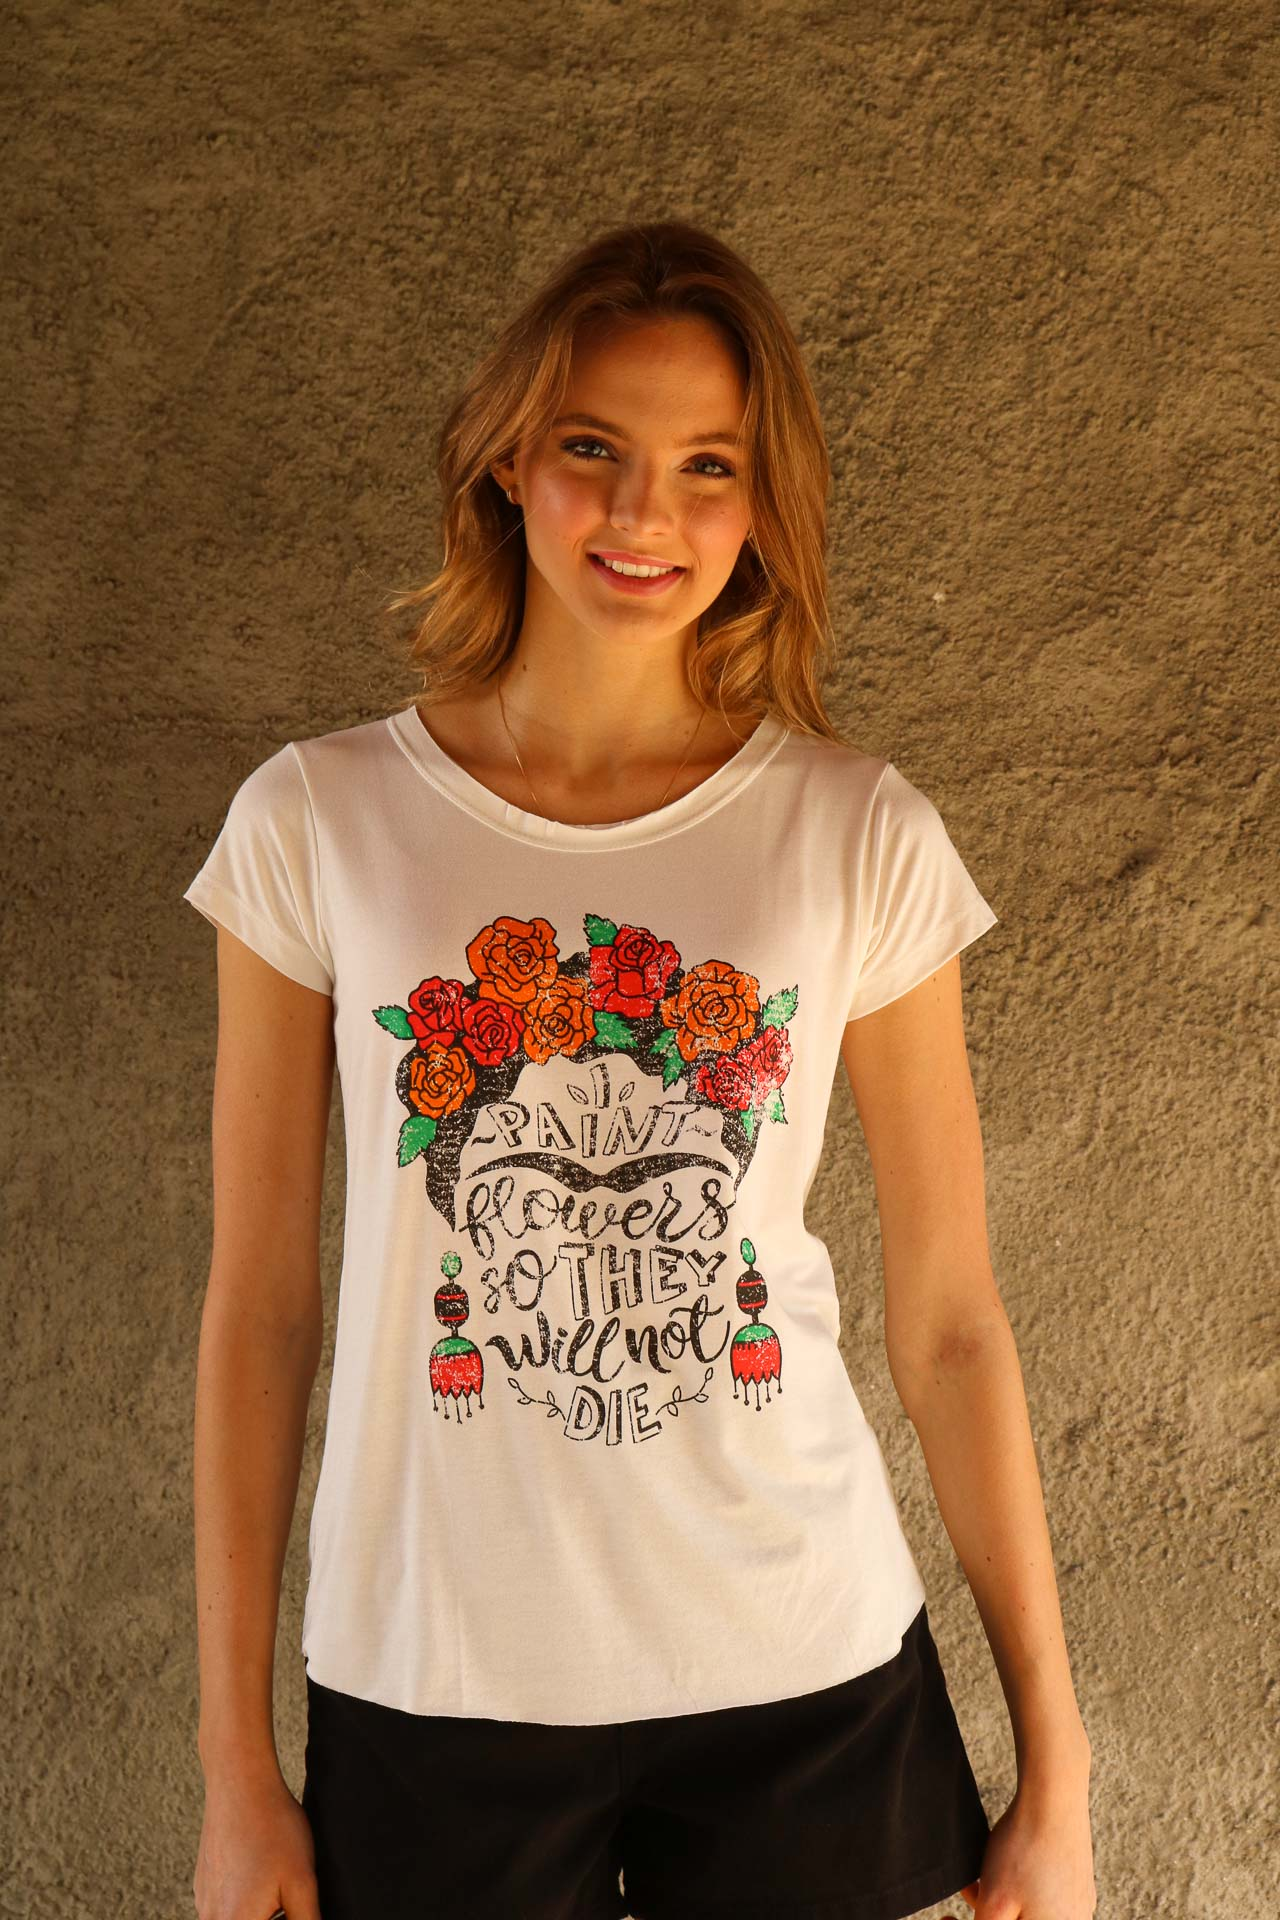 T-SHIRT VISCOLYCRA I PAINT FLOWERS SO THEY WILL NOT DIE